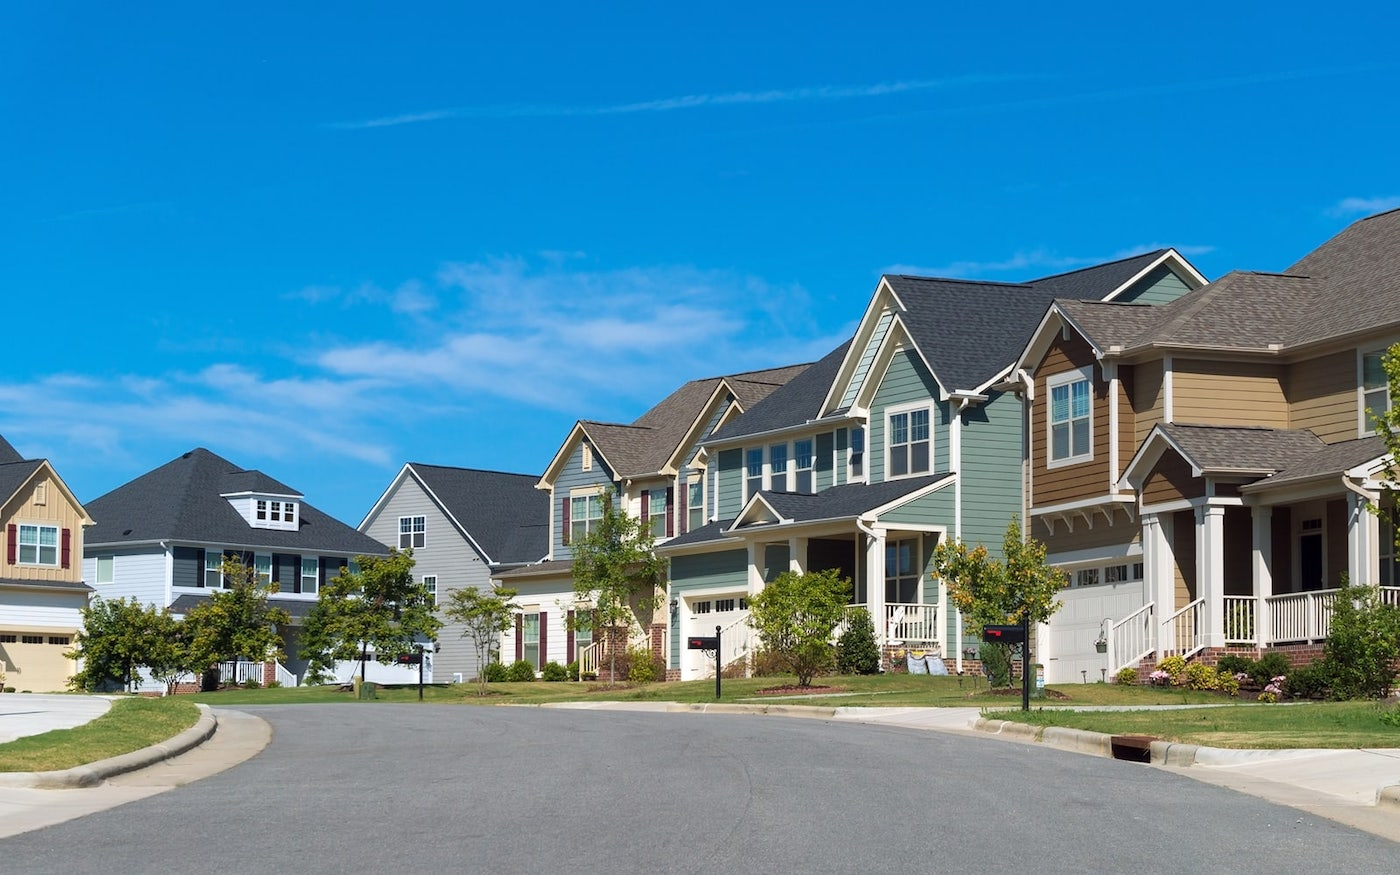 Home Improvement Tips for Your Holmdel, New Jersey Home – Mistakes to avoid when hiring a roofer